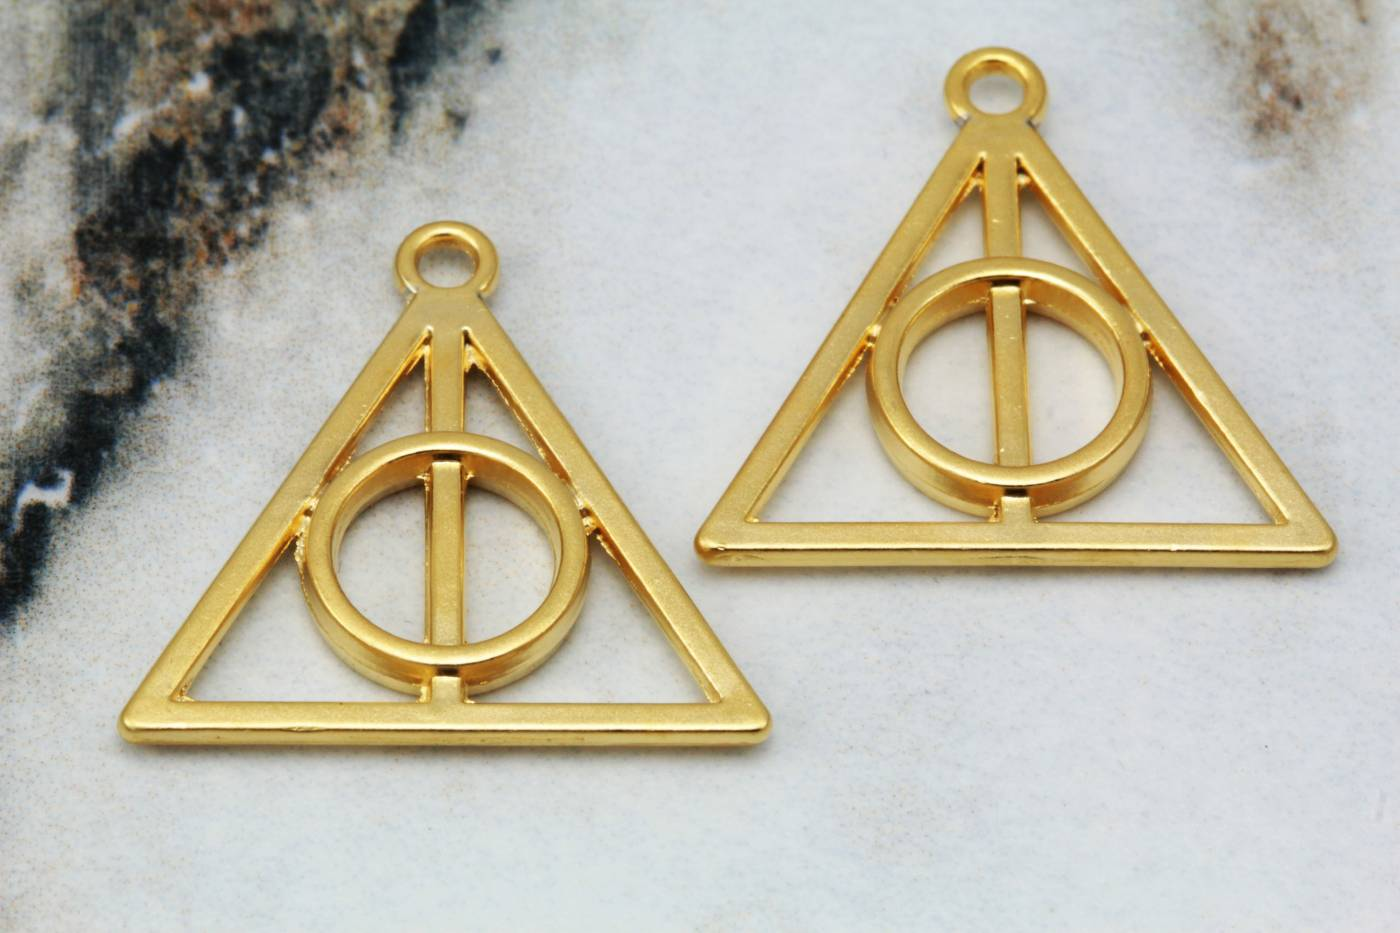 gold-plated-triangle-jewelry-pendants.jpg